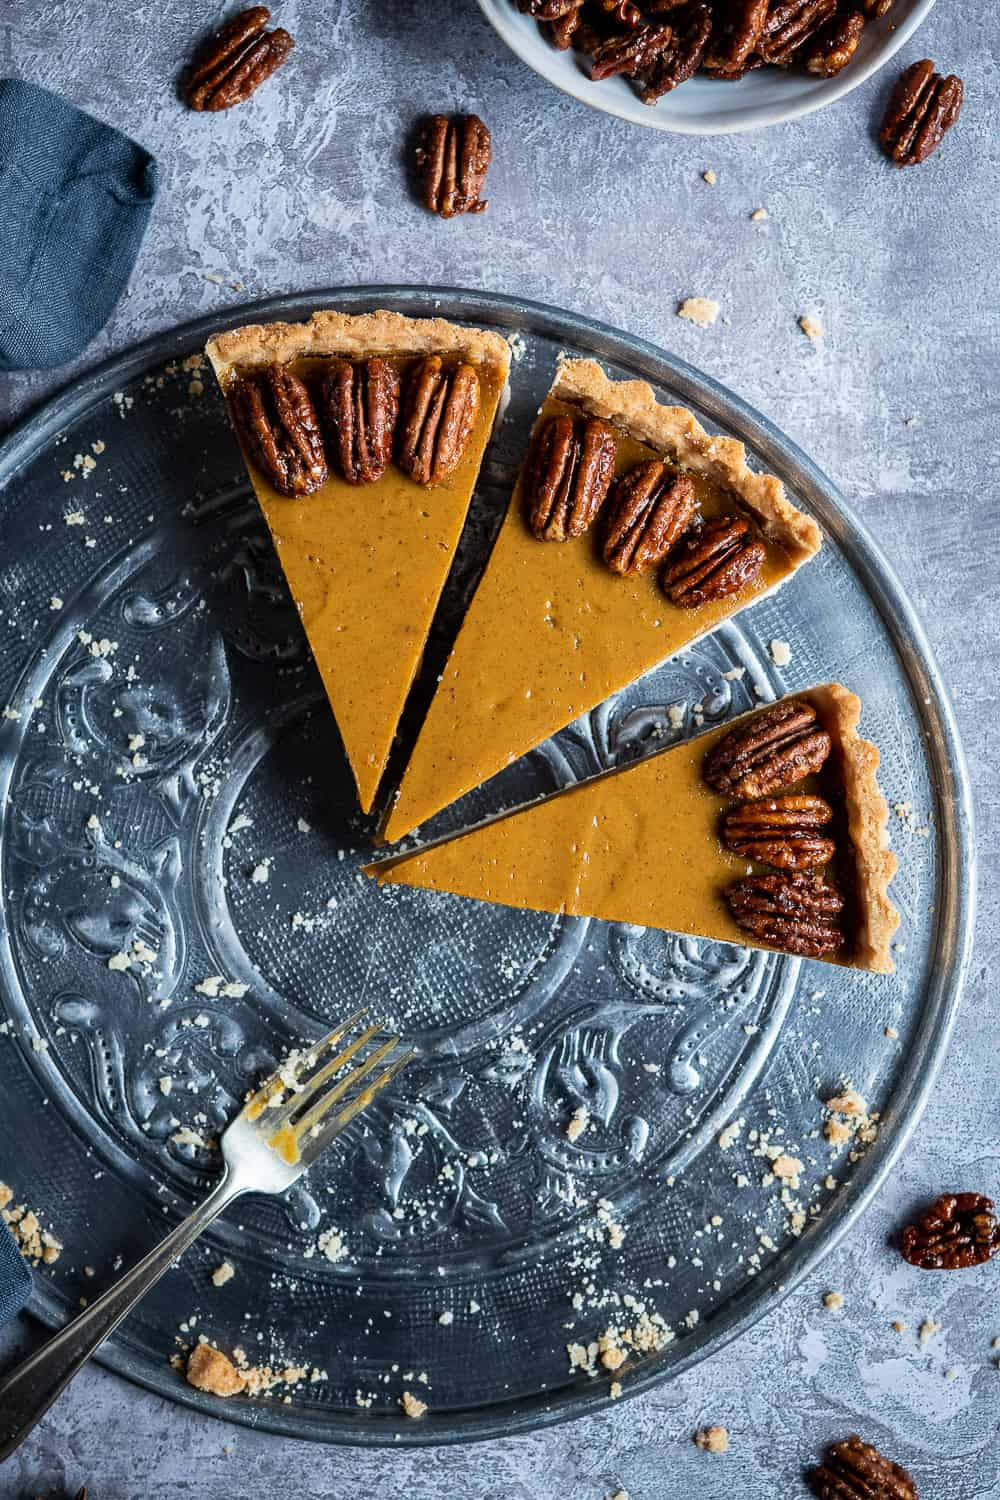 Three slices of vegan pumpkin pie on a metal plate.